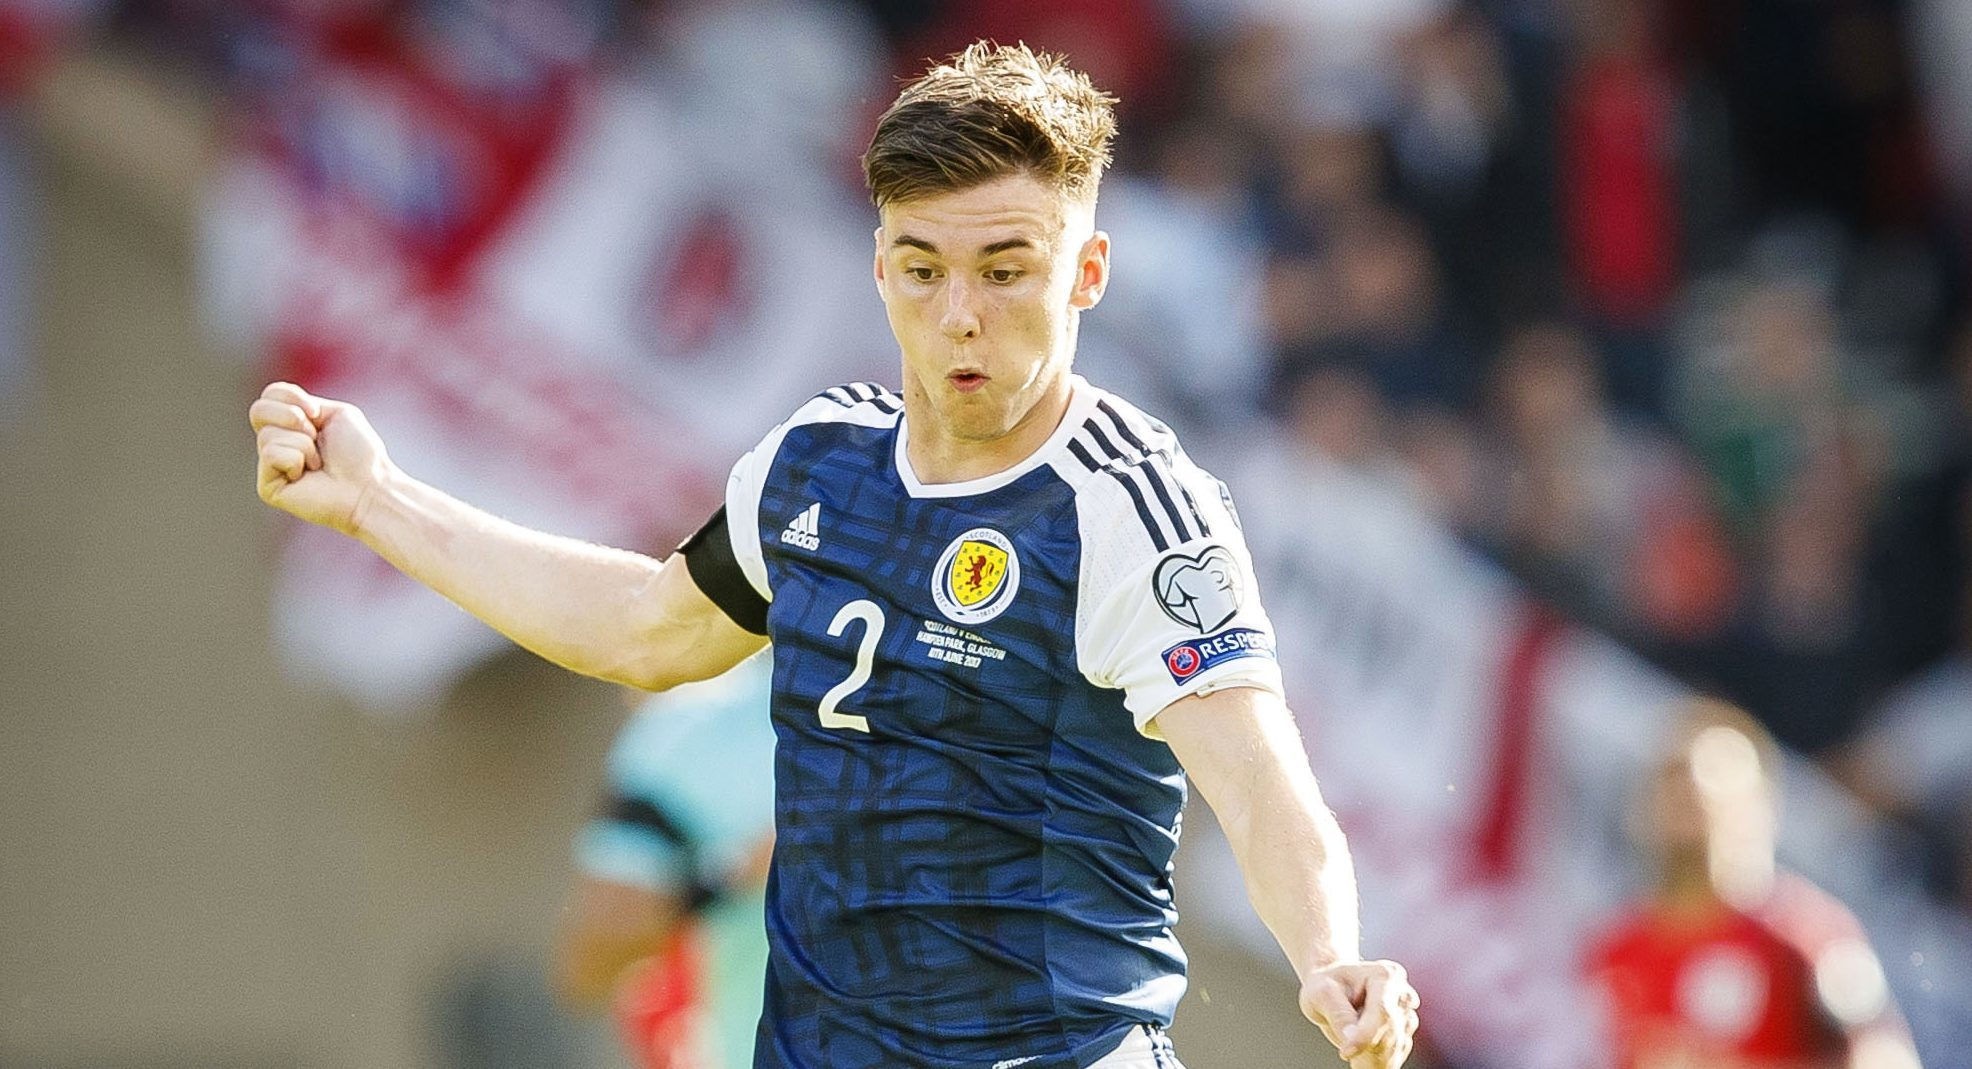 Kieran Tierney in action for Scotland (SNS)